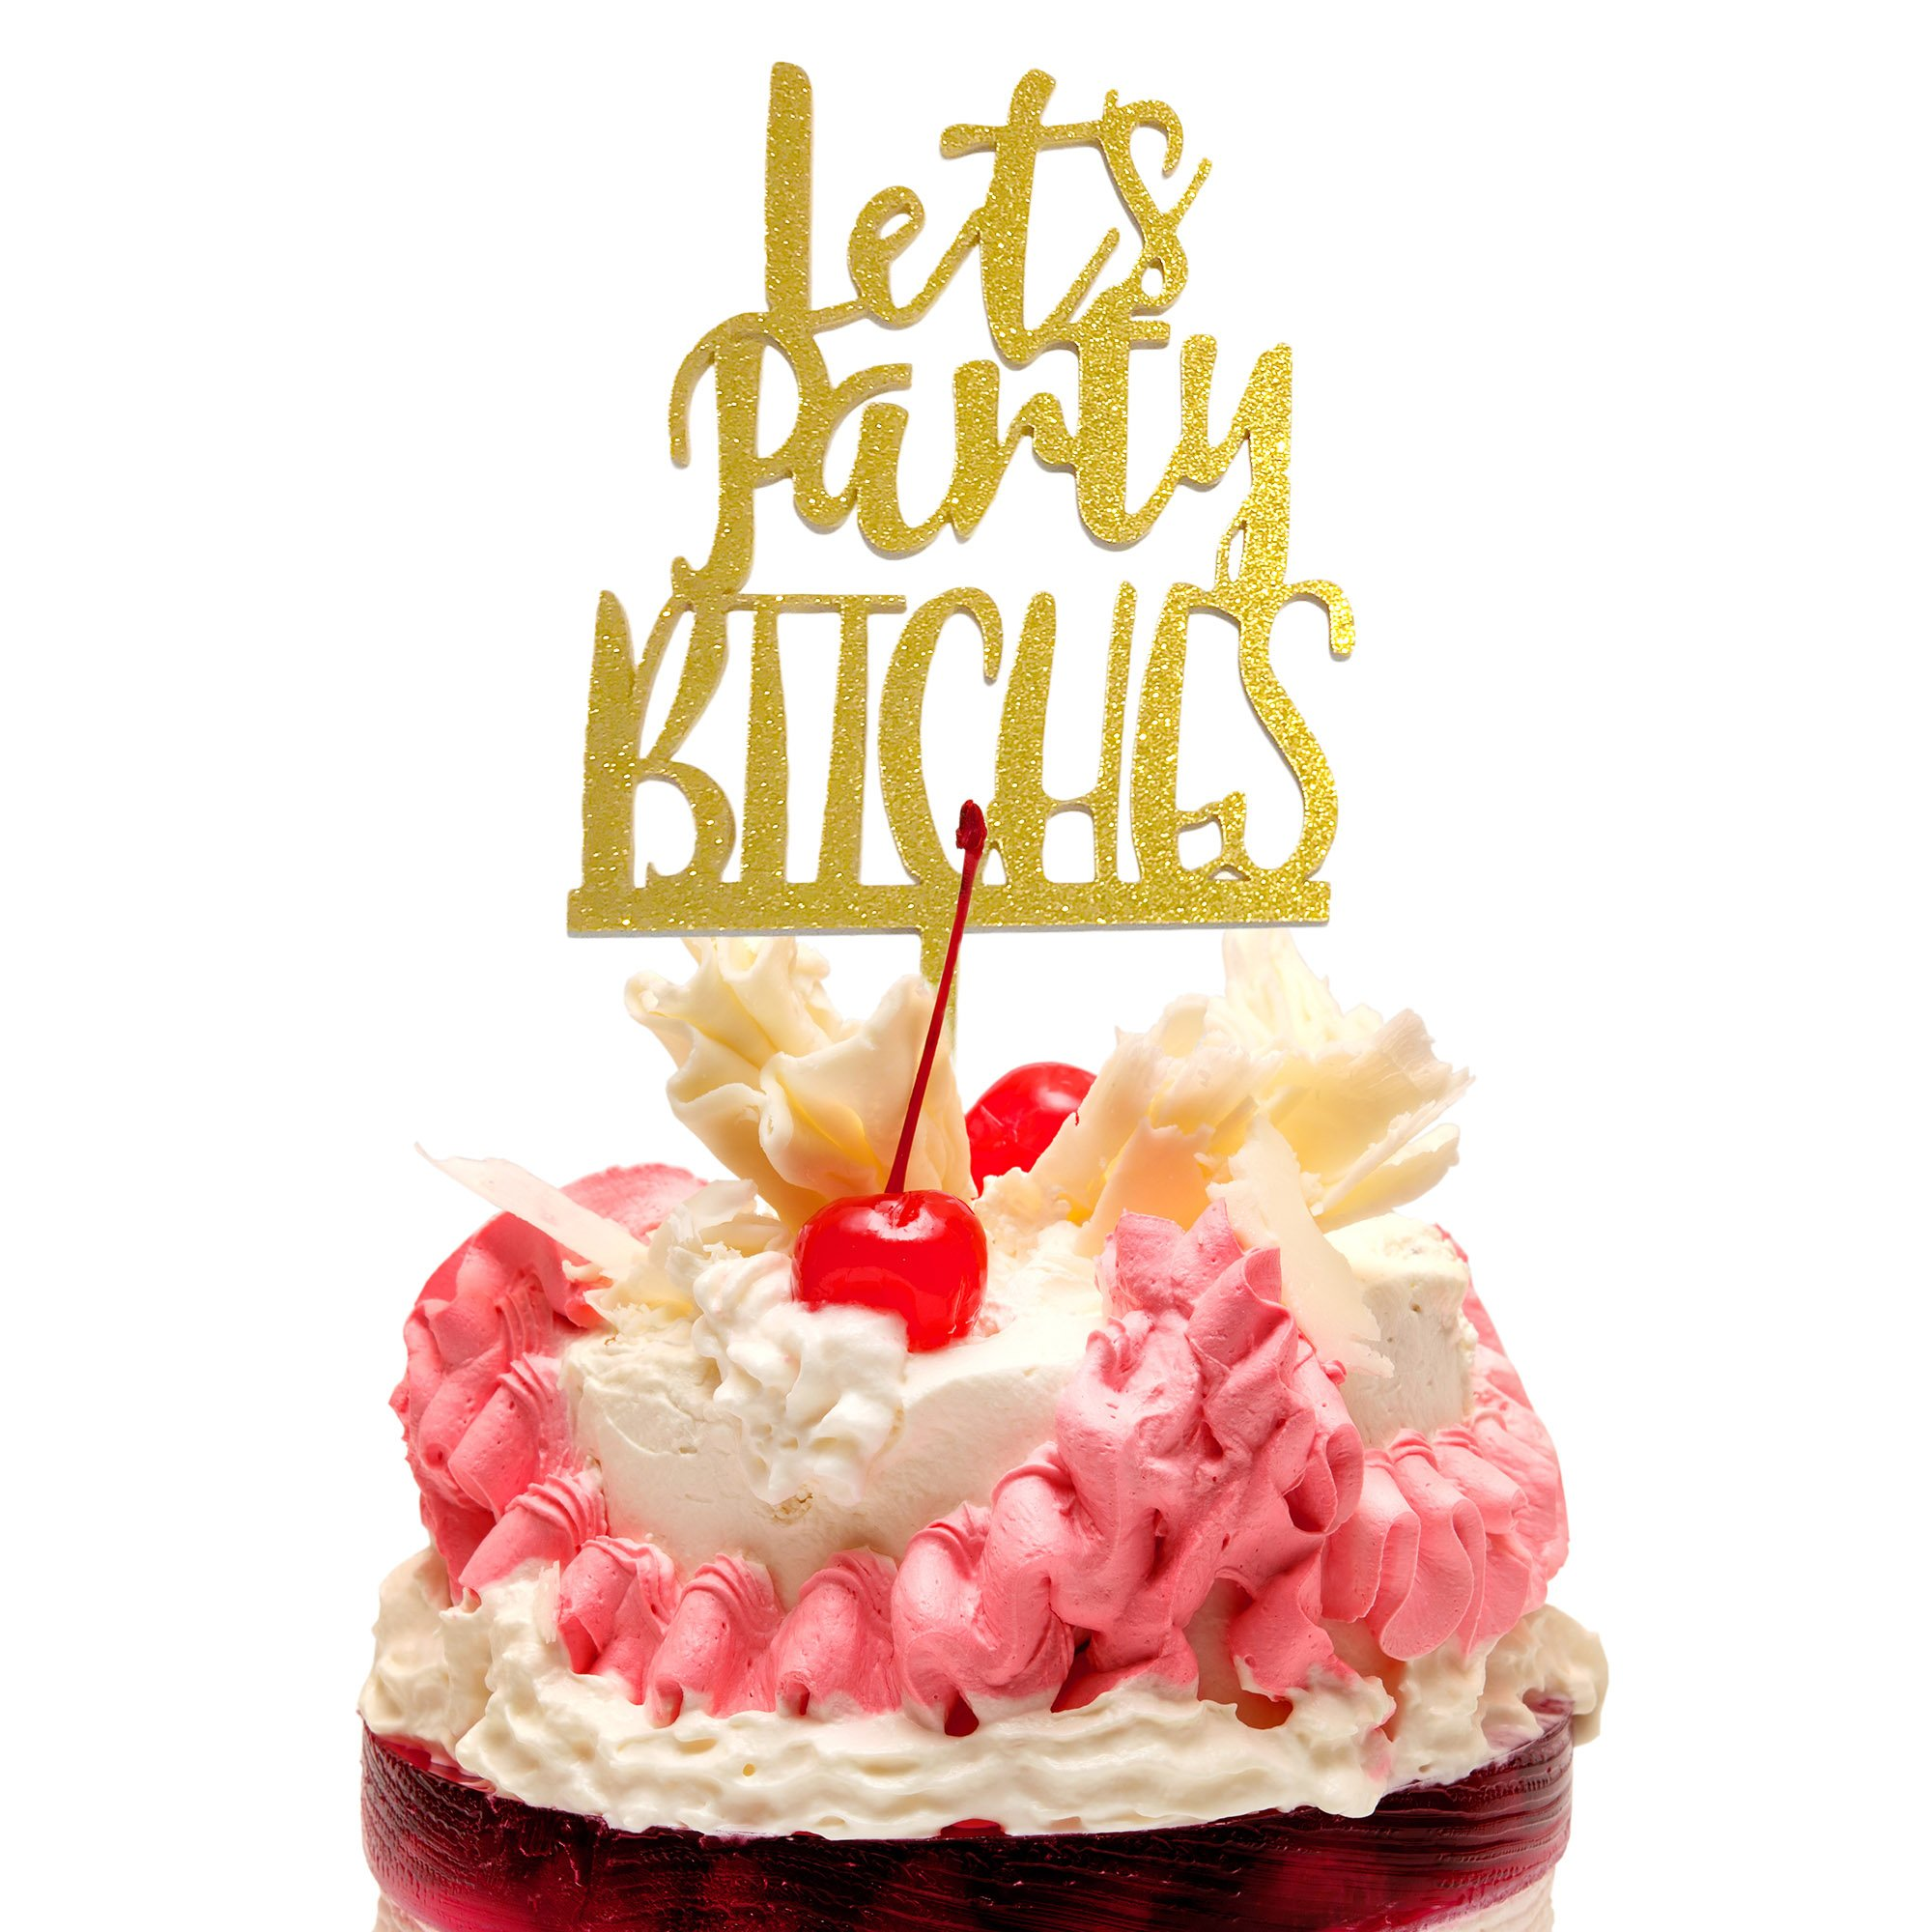 JennyGems - Let's Party Cake Topper - Bachelorette Parties or Girls Weekends - Acrylic Plastic Gold Sparkle Cake Topper